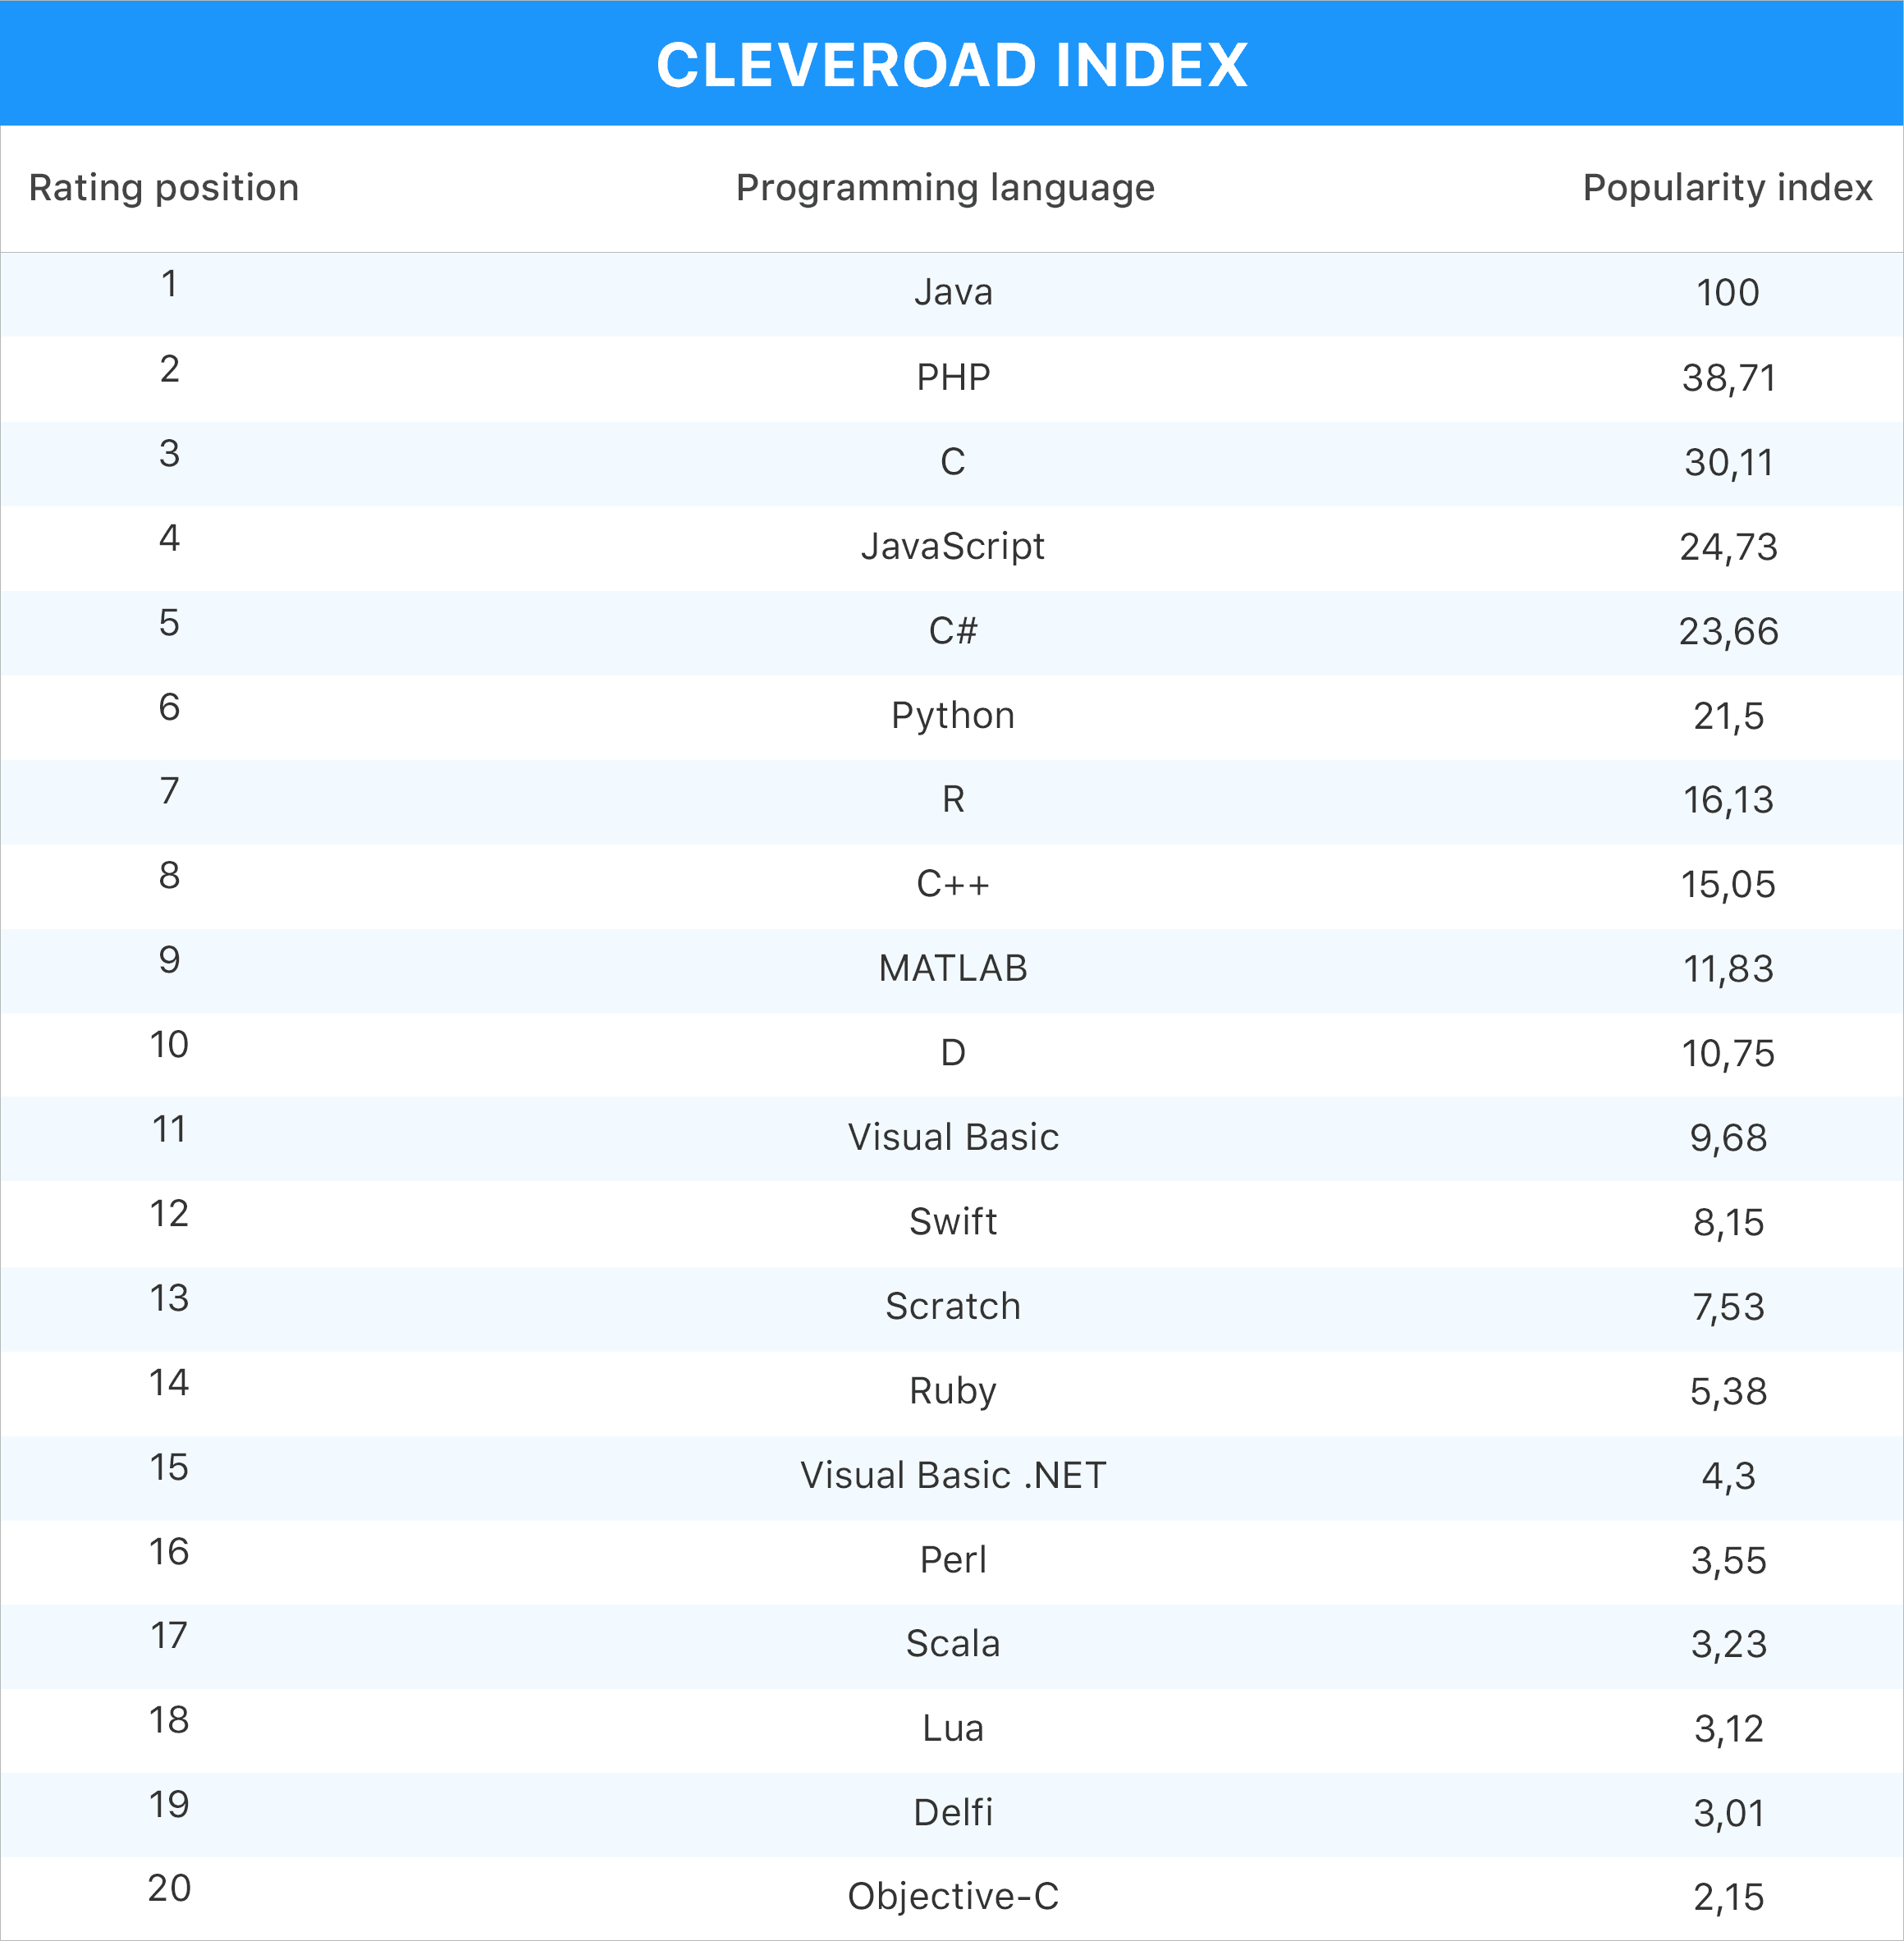 CLEVEROAD Index